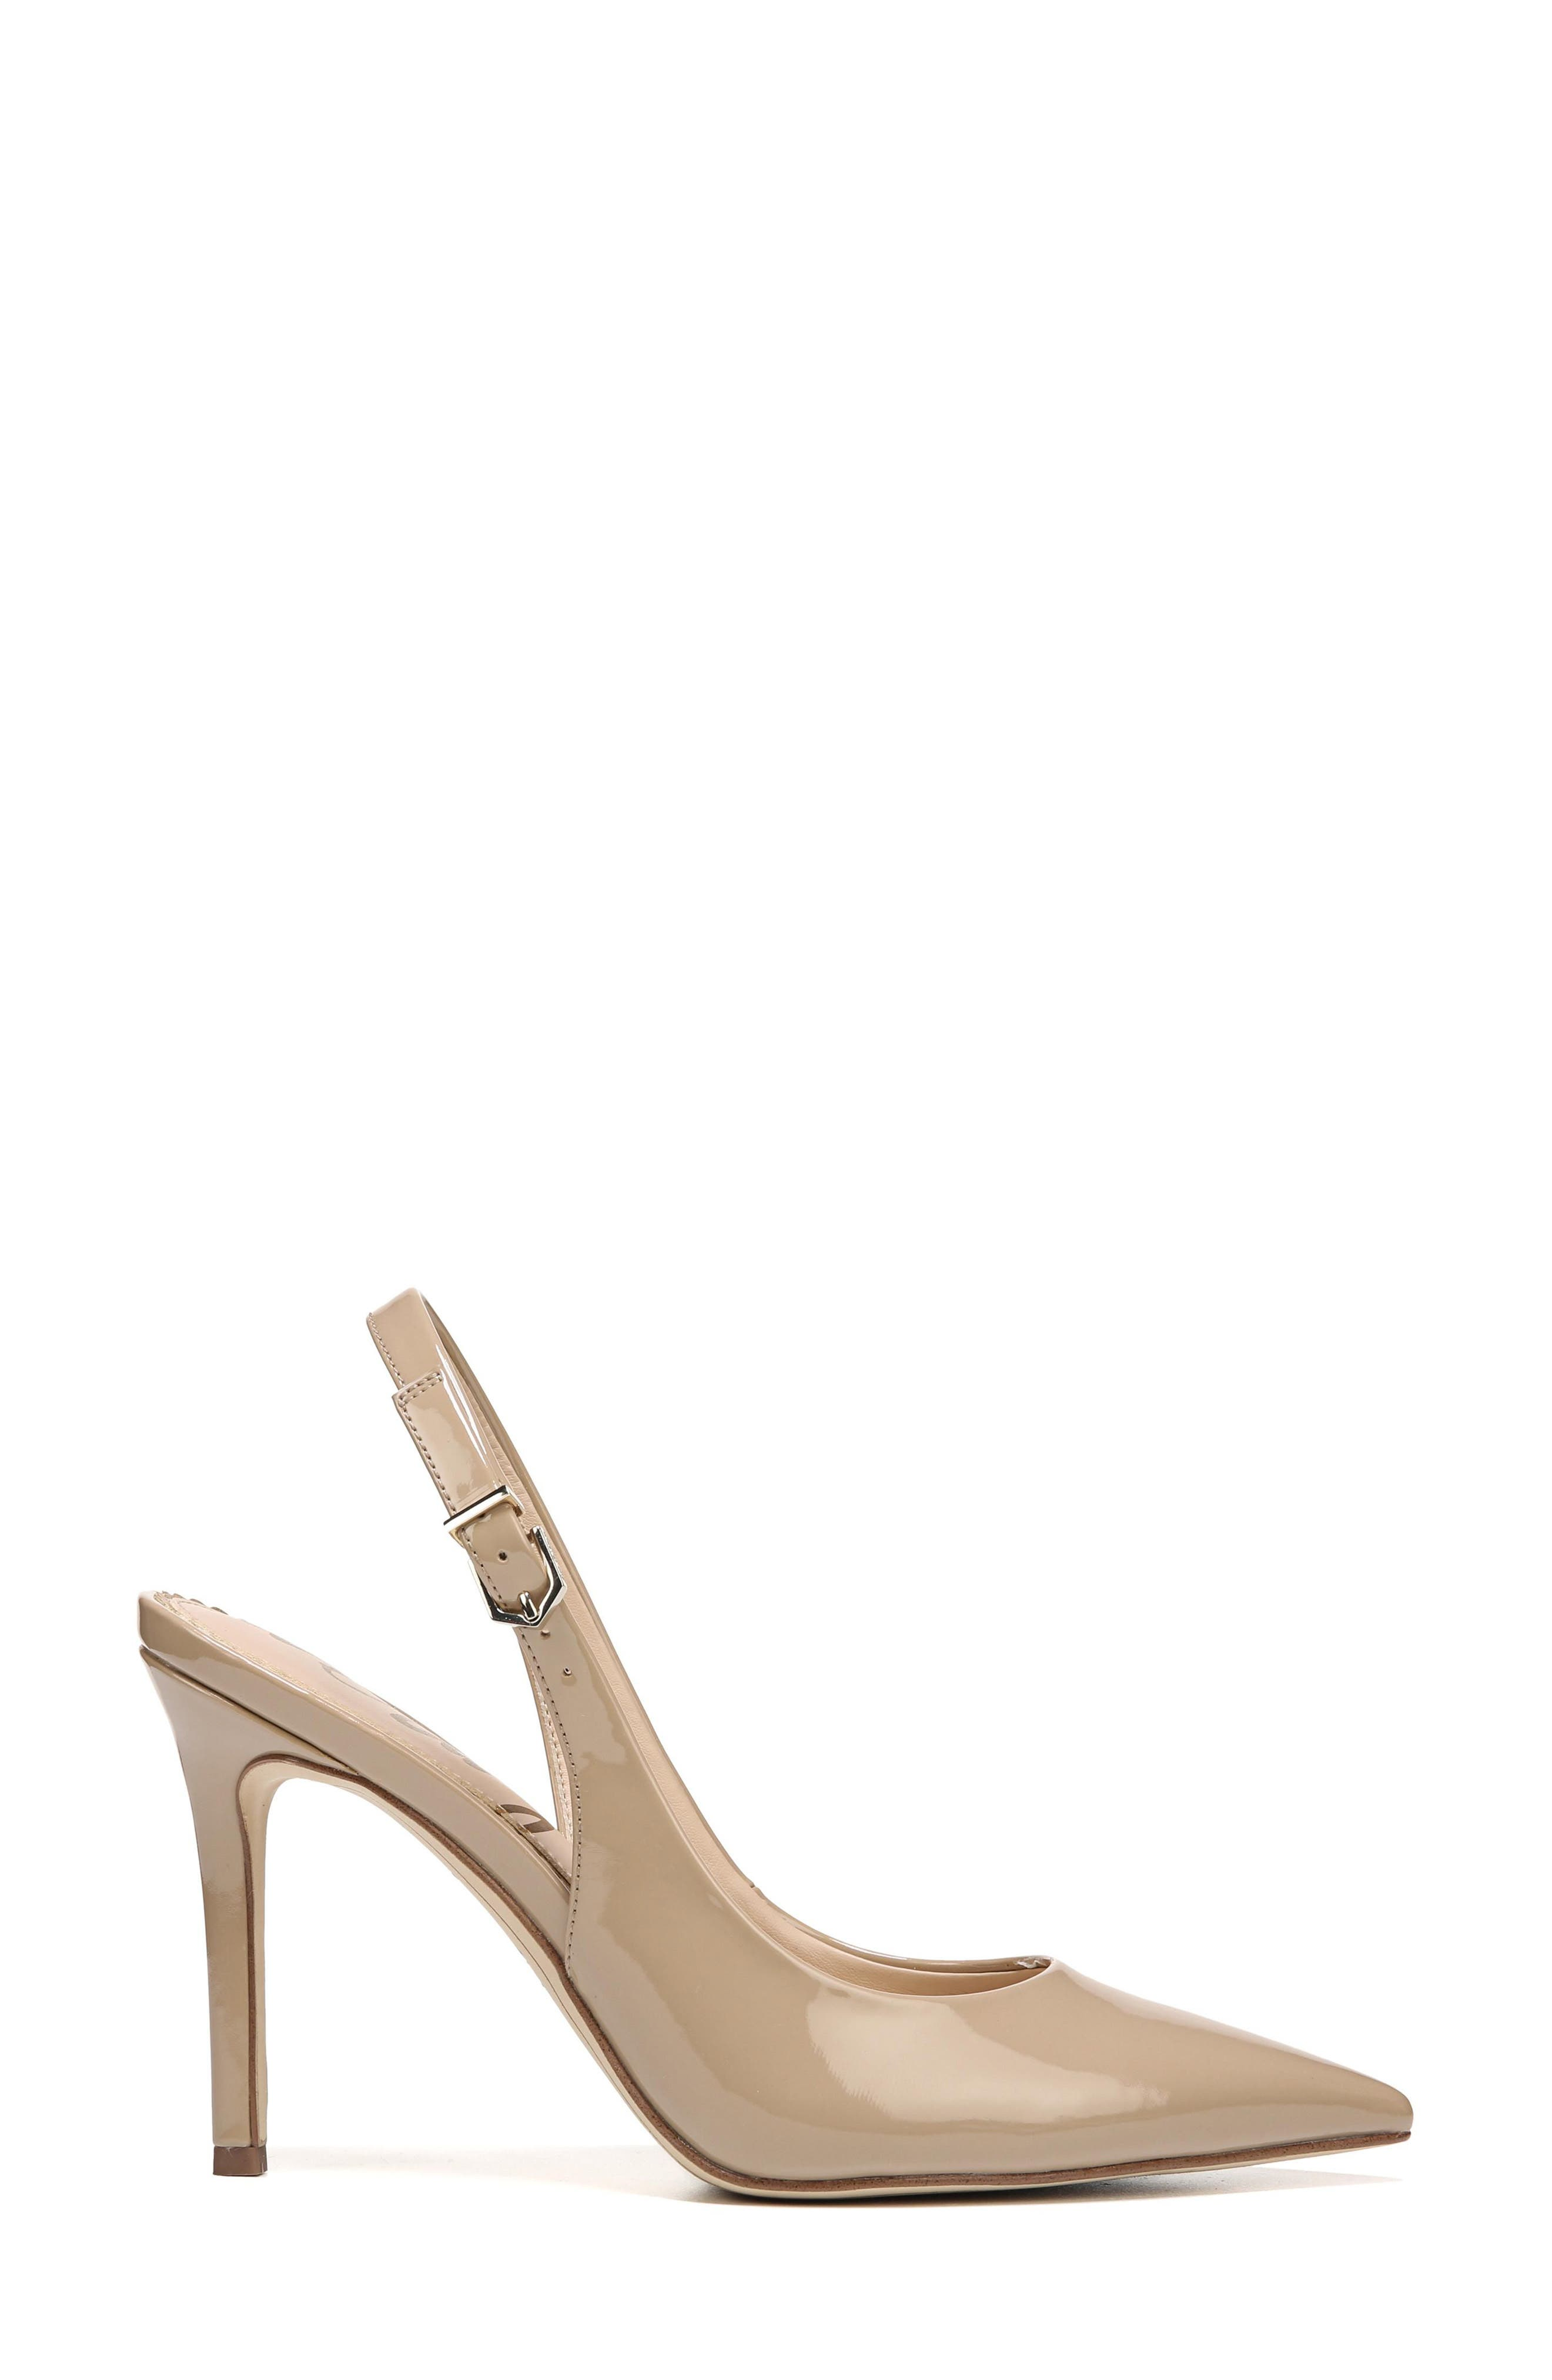 Hastings Slingback Pump,                             Alternate thumbnail 3, color,                             Classic Nude Patent Leather